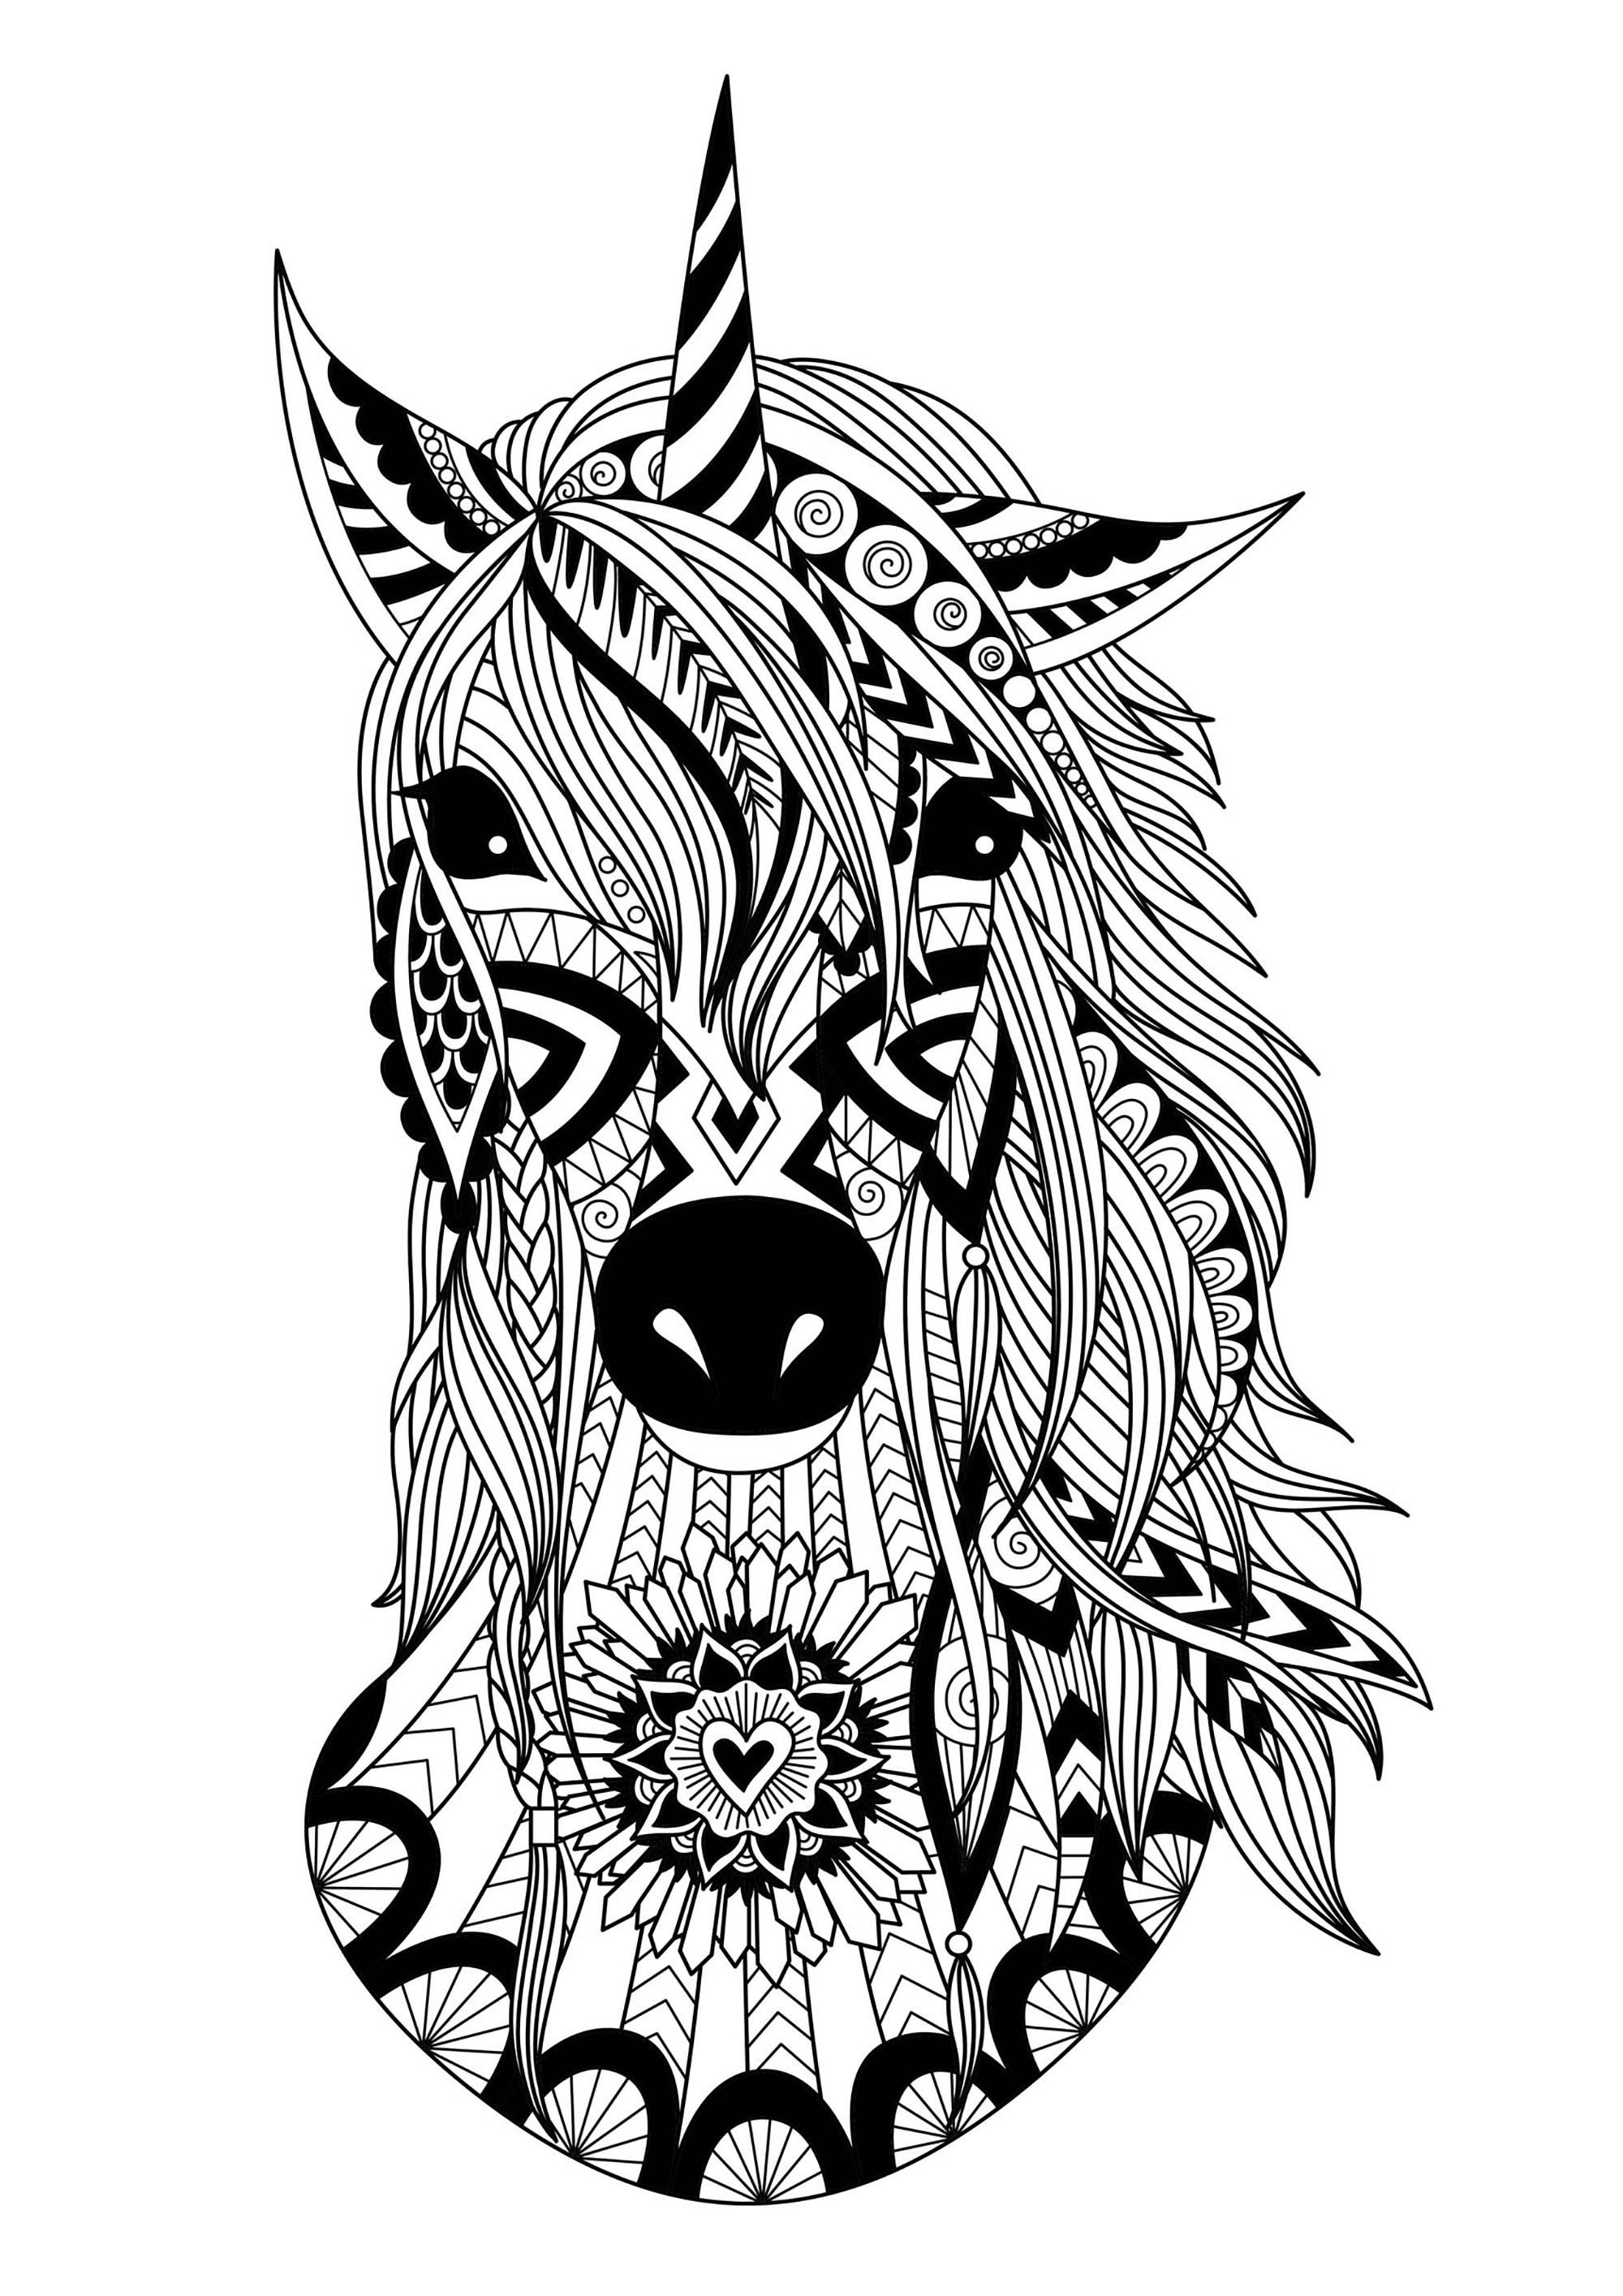 Unicorn zentangle simple - Unicorns Adult Coloring Pages